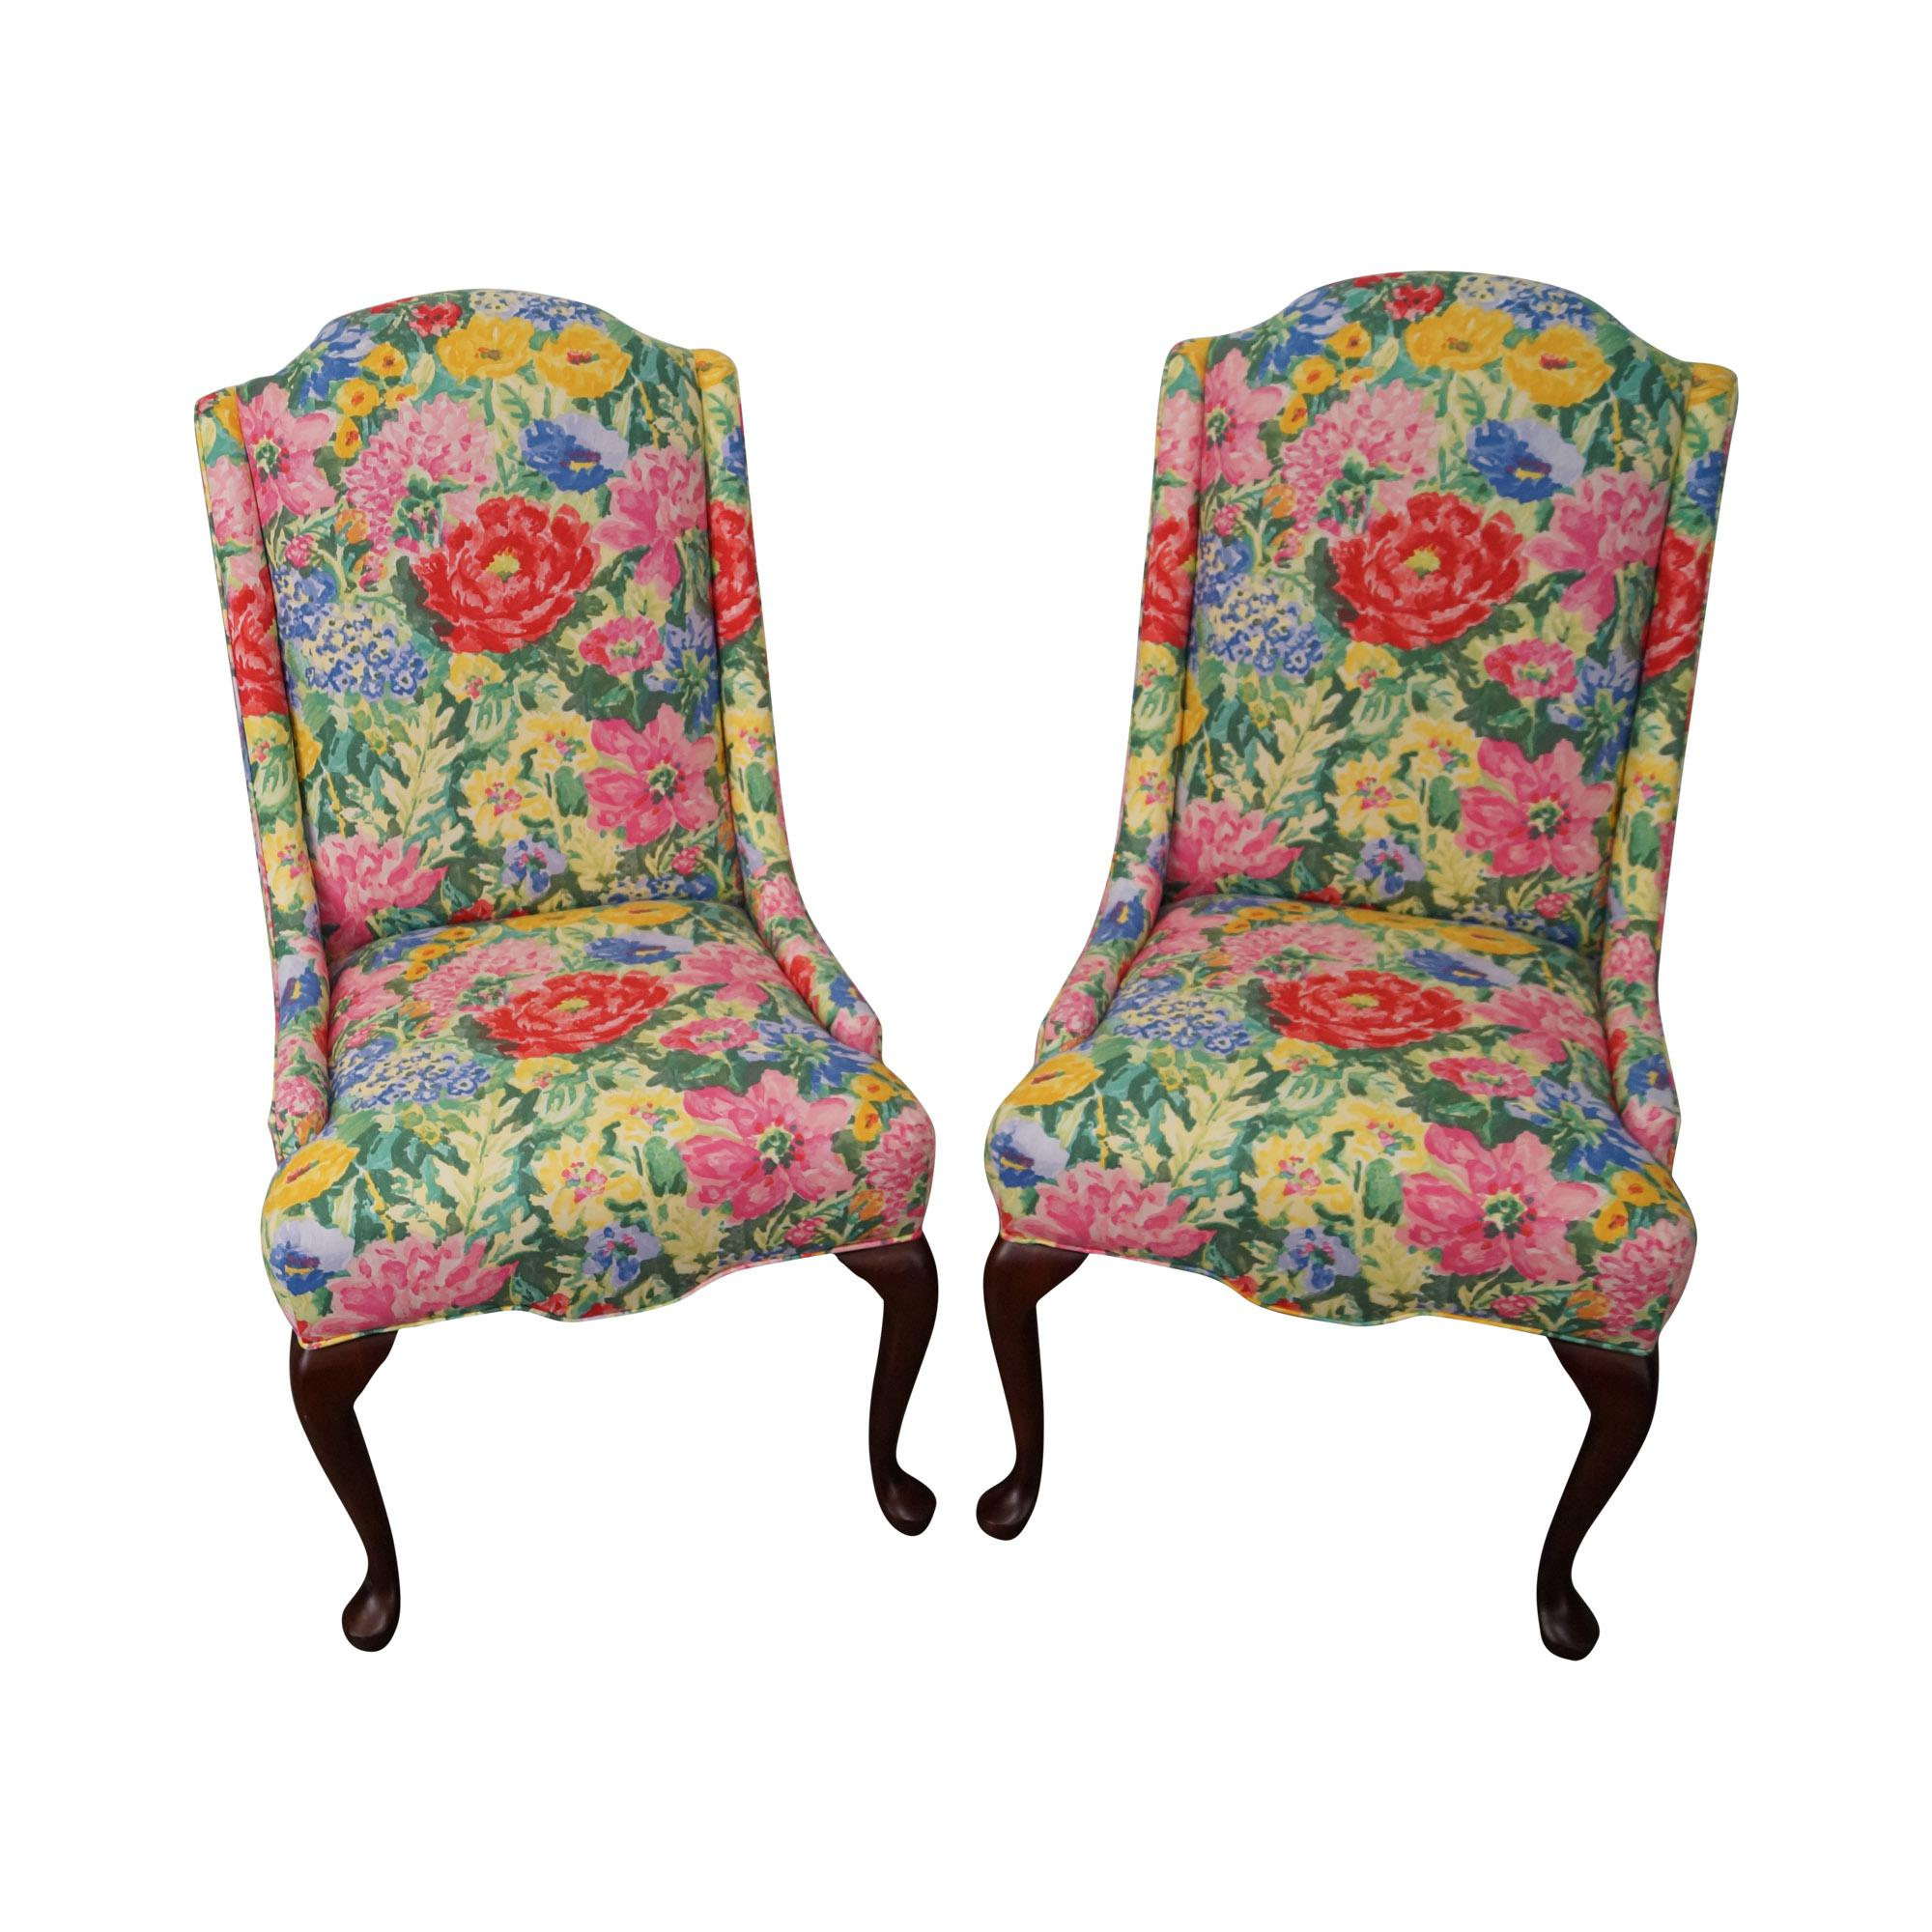 floral upholstered chair best fabric for seats pennsylvania house queen anne host